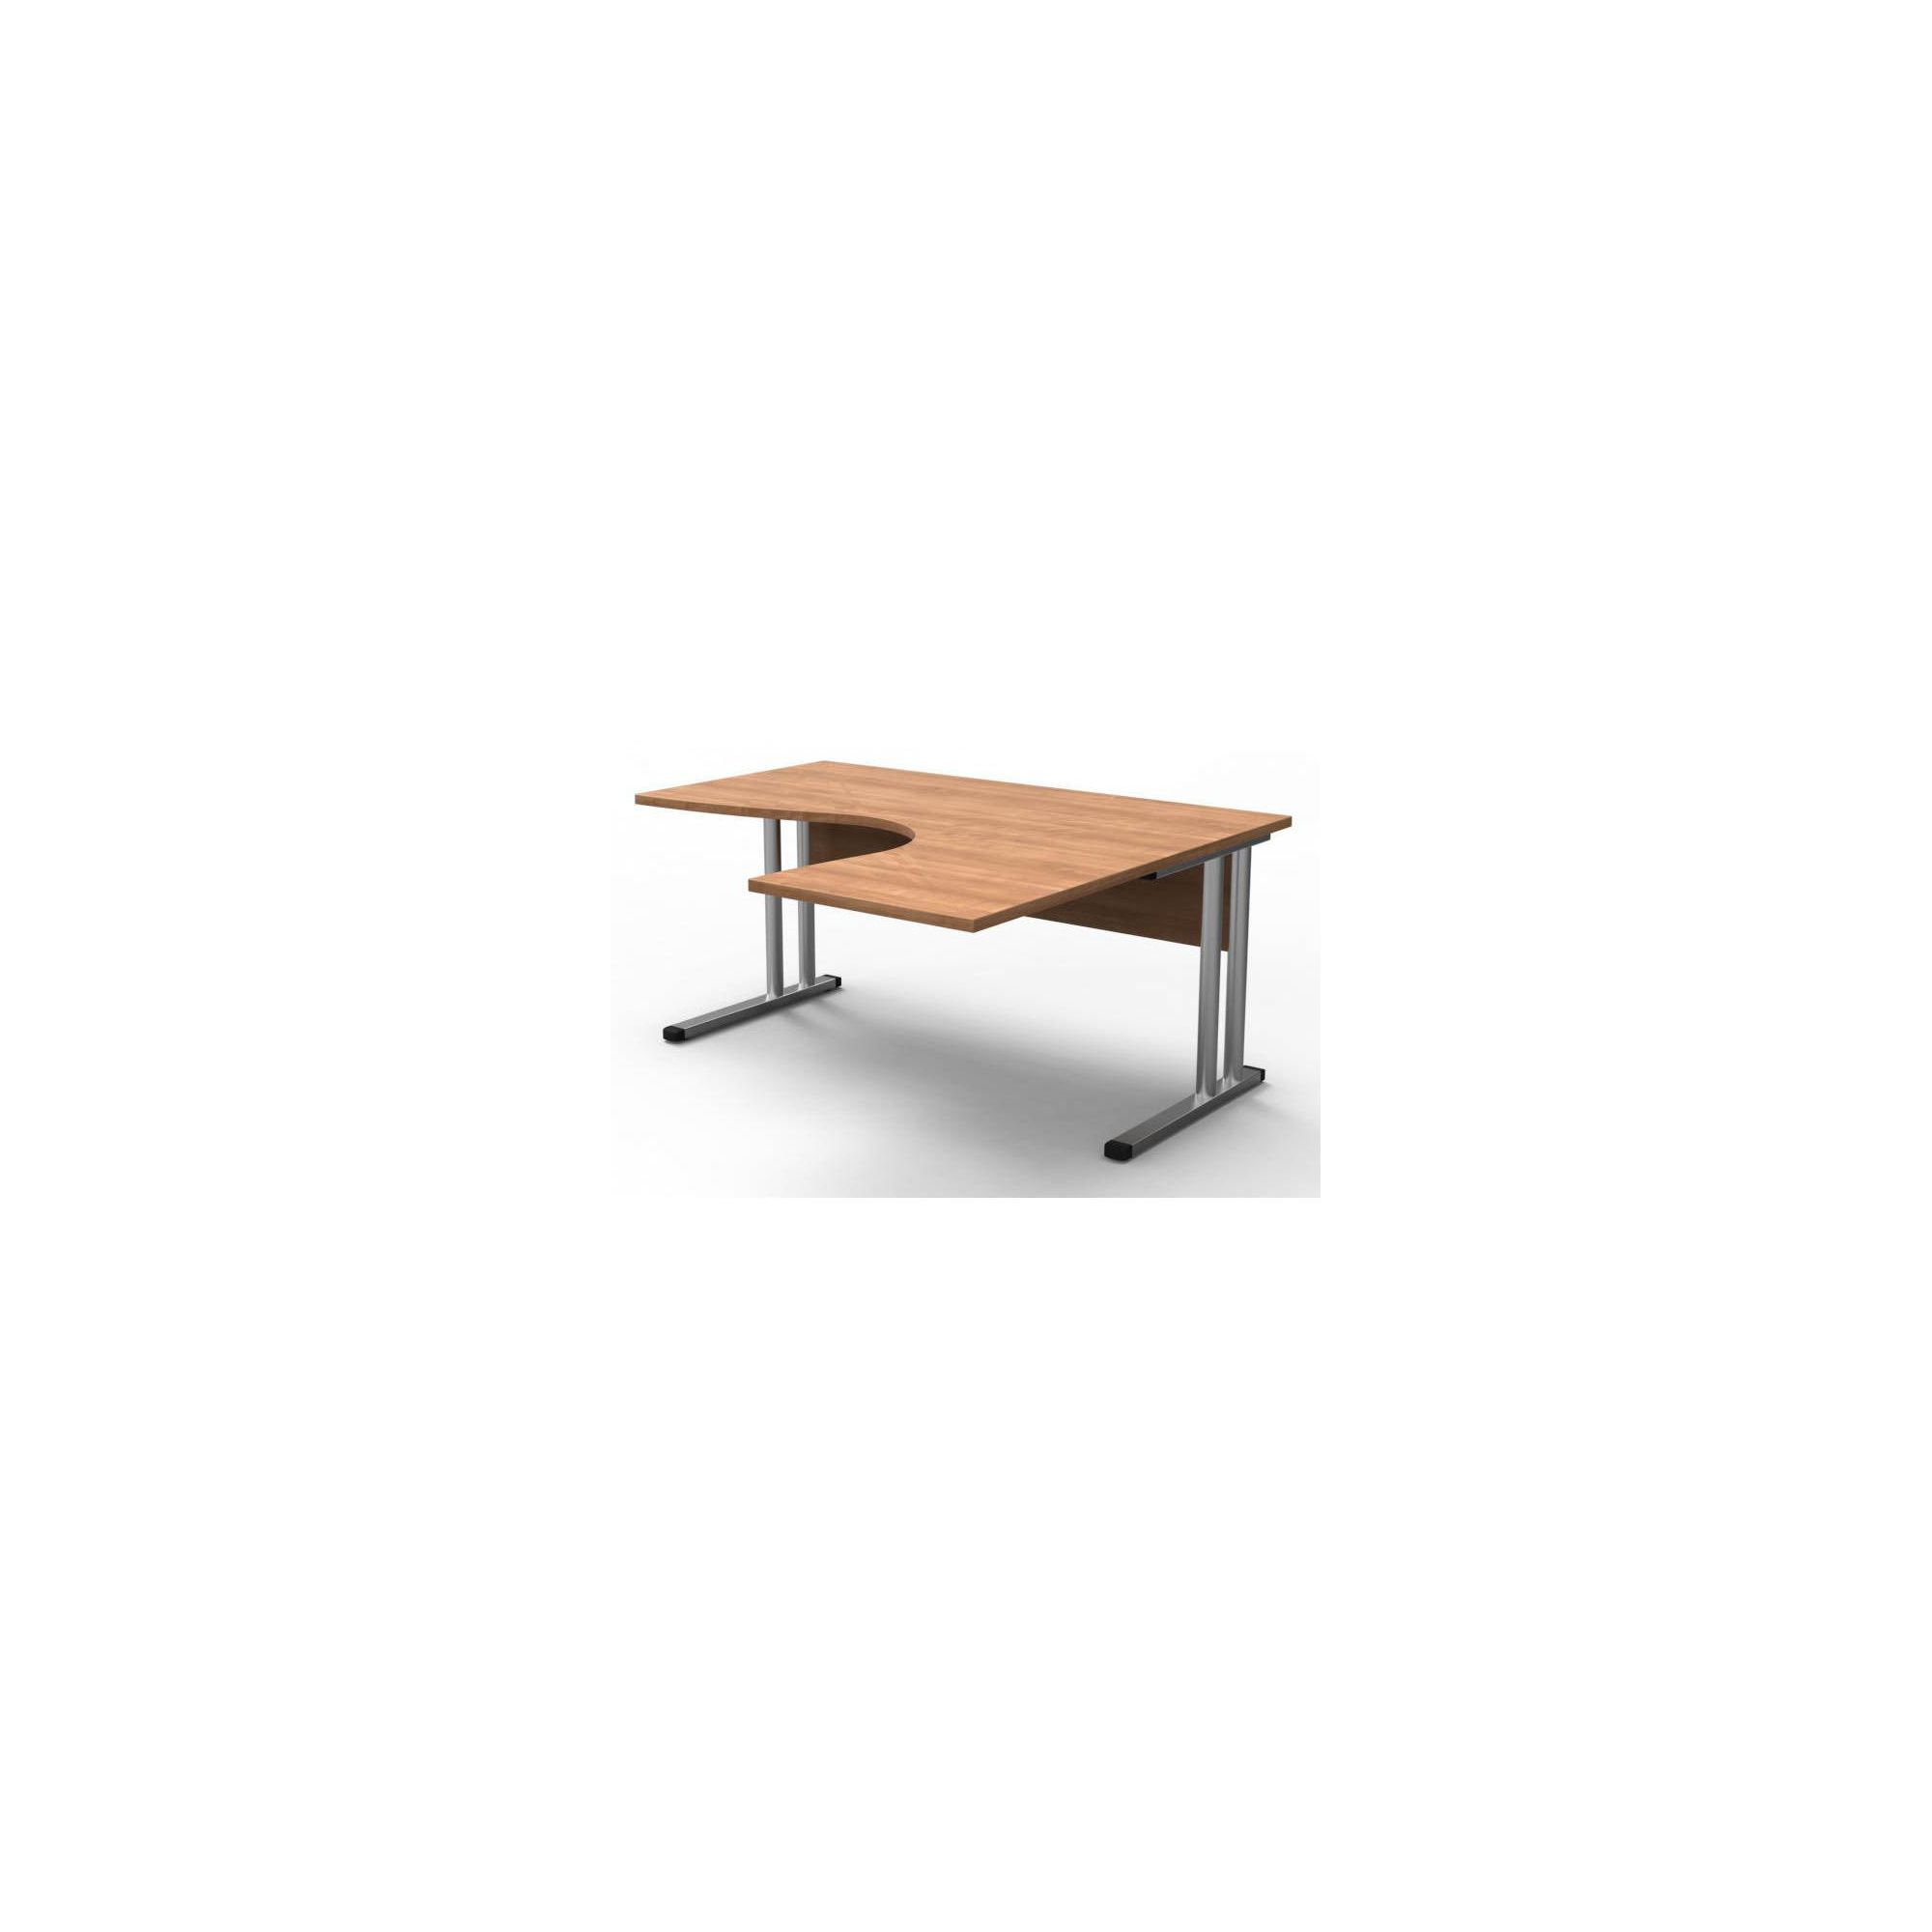 Modal Perfect 160cm Radial Desk in Warm Cherry at Tesco Direct